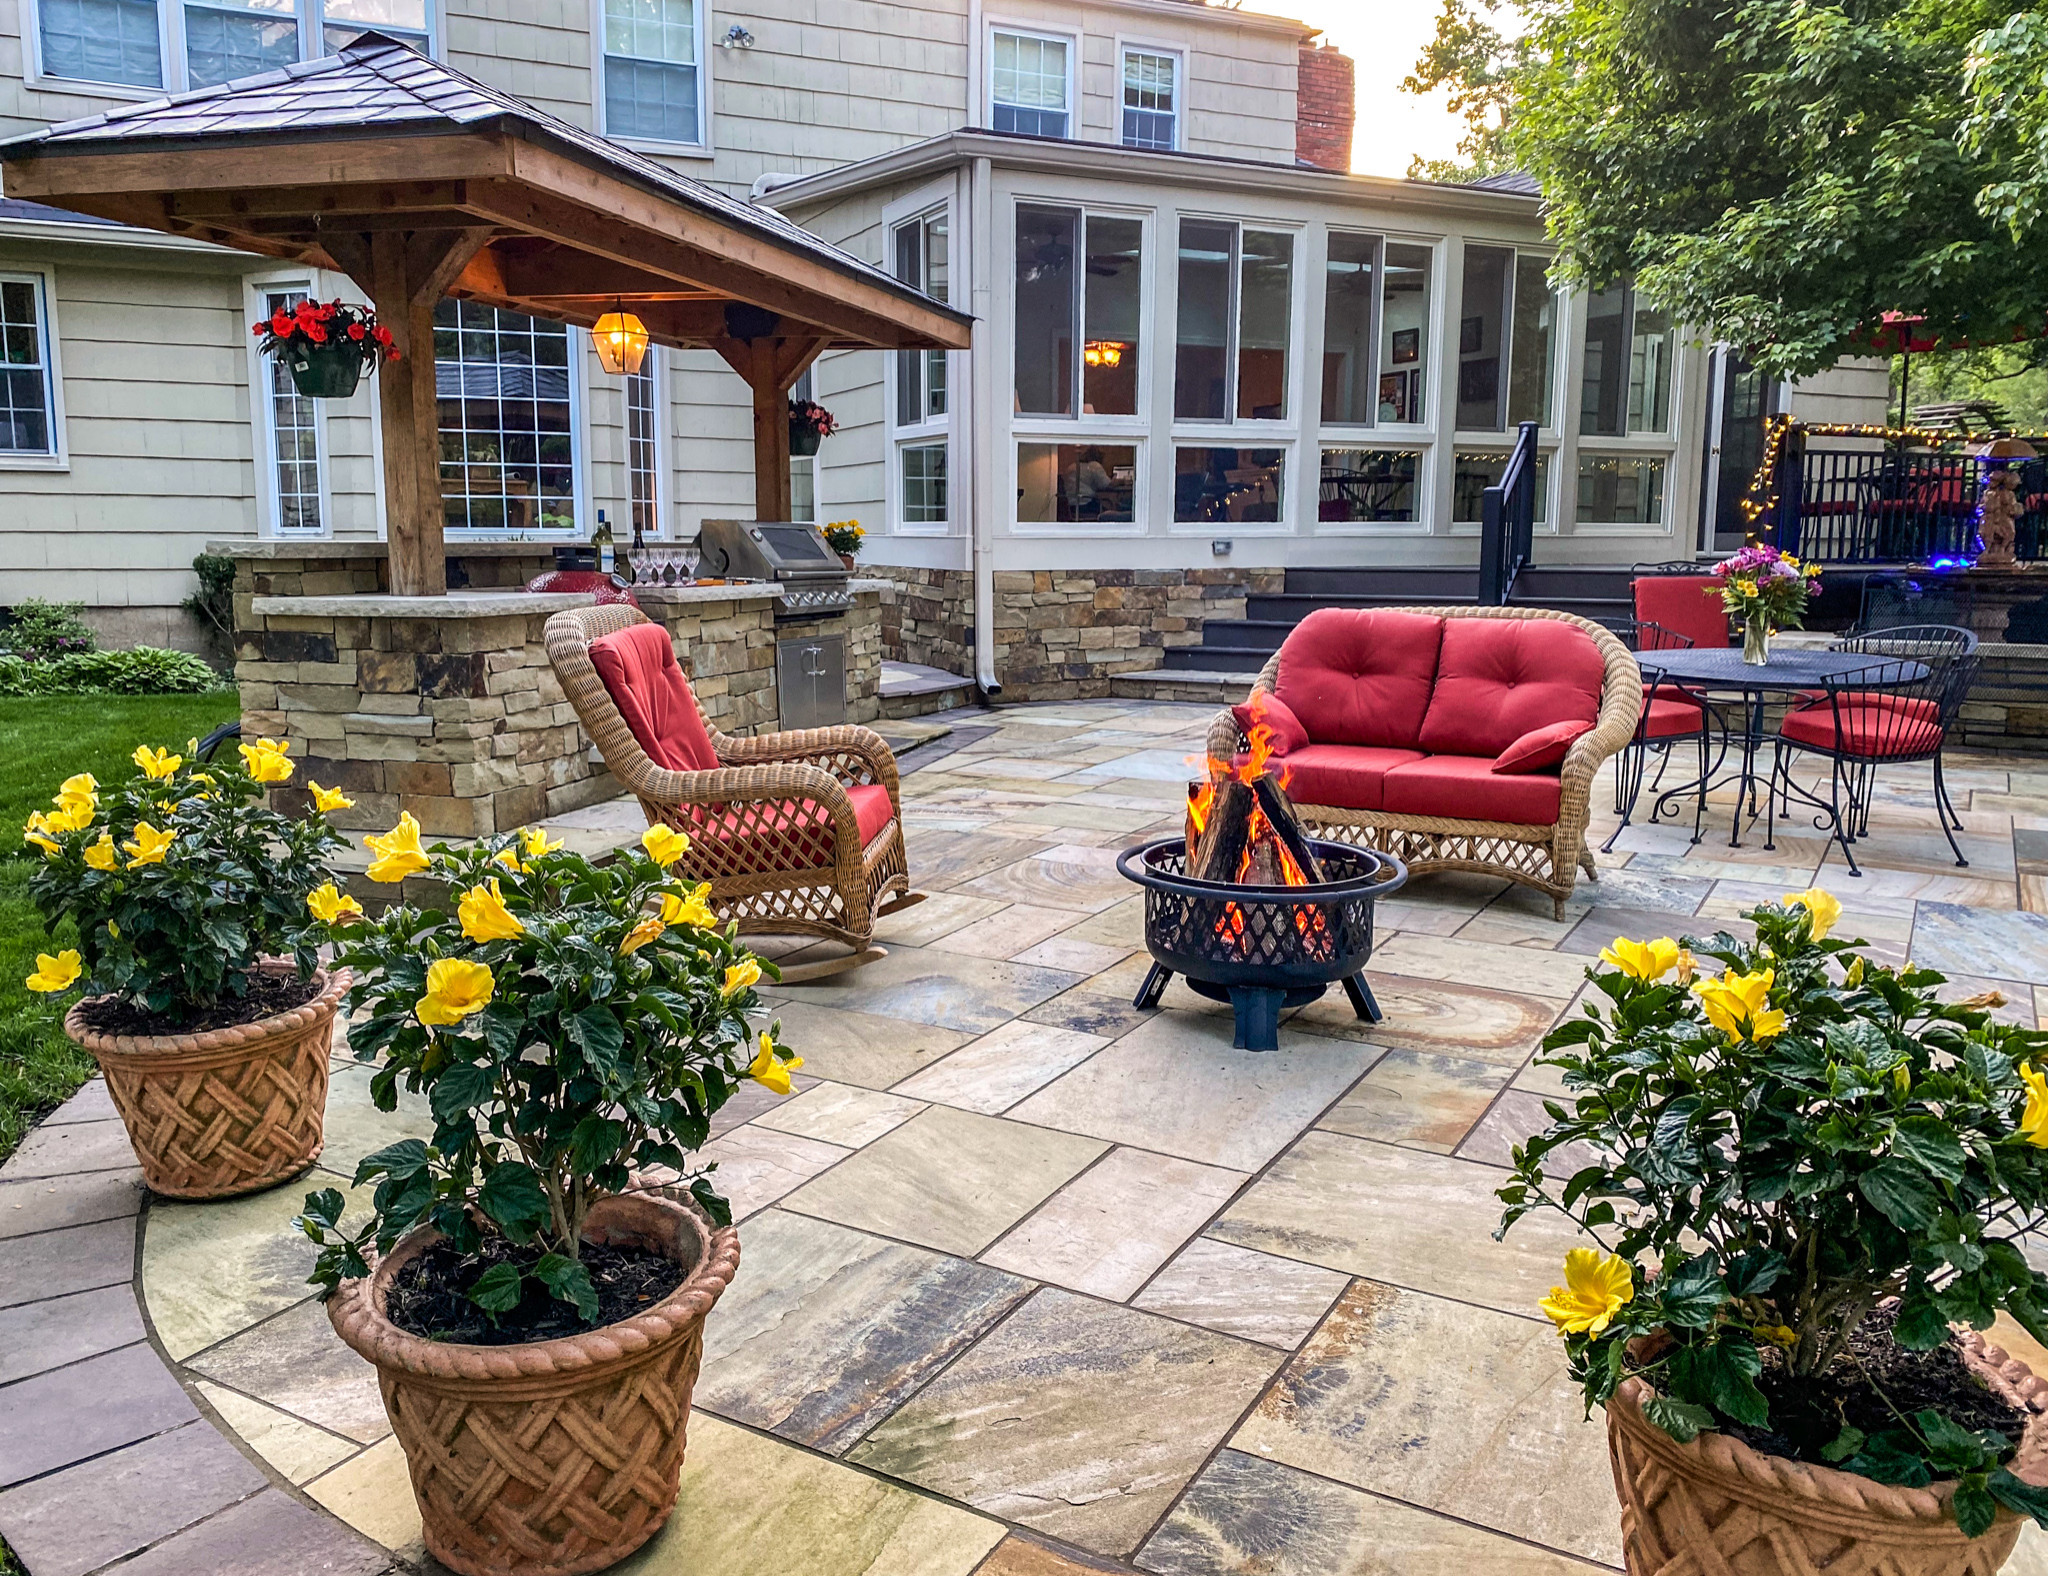 15 Superb Shabby Chic Patio Designs That Will Inspire You